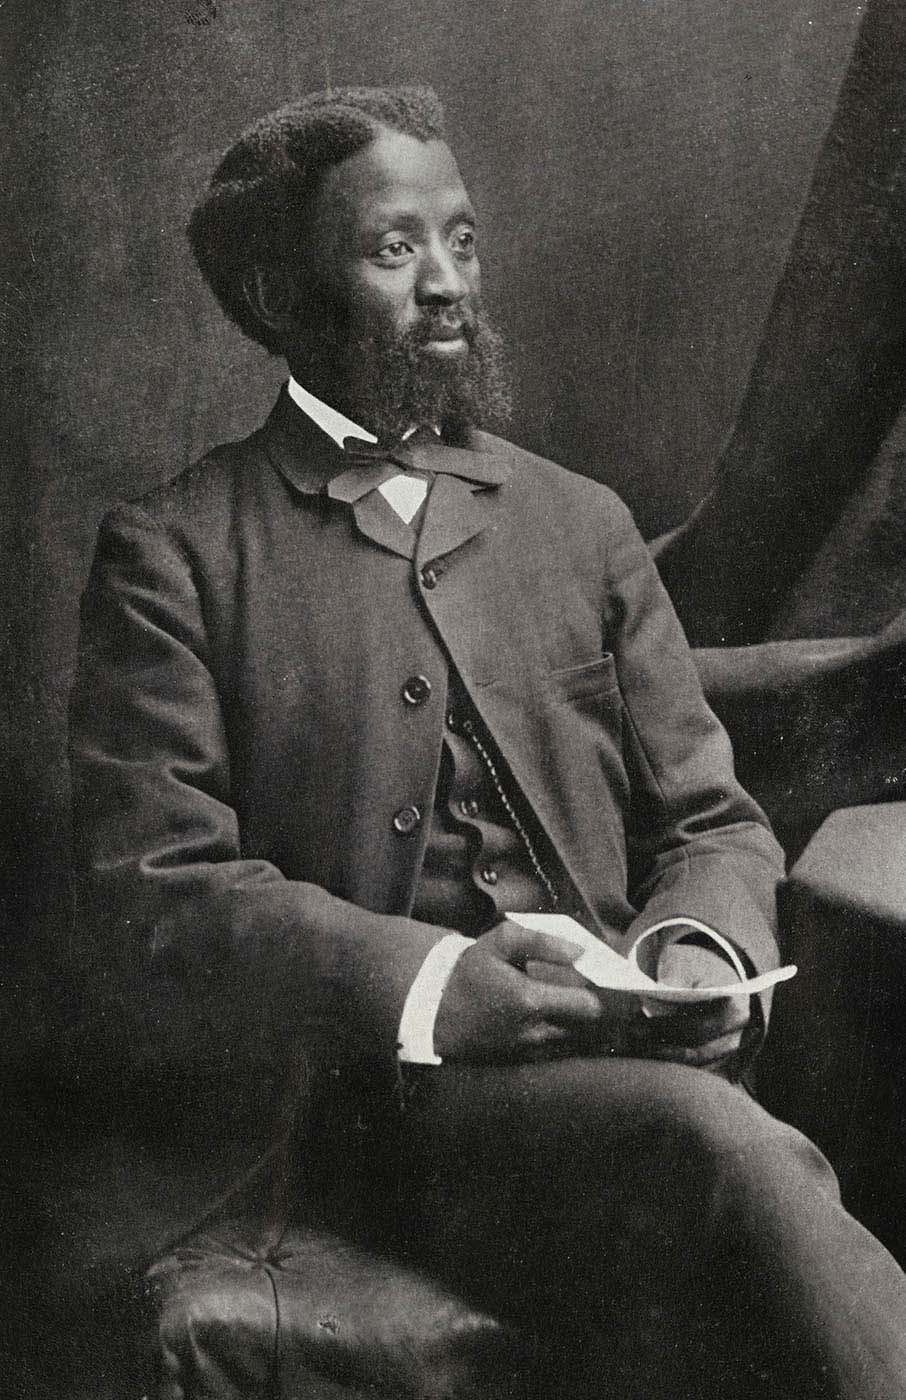 Portrait photograph of Xhosa Prebyterian minister John Knox Bokwe - click to view larger image